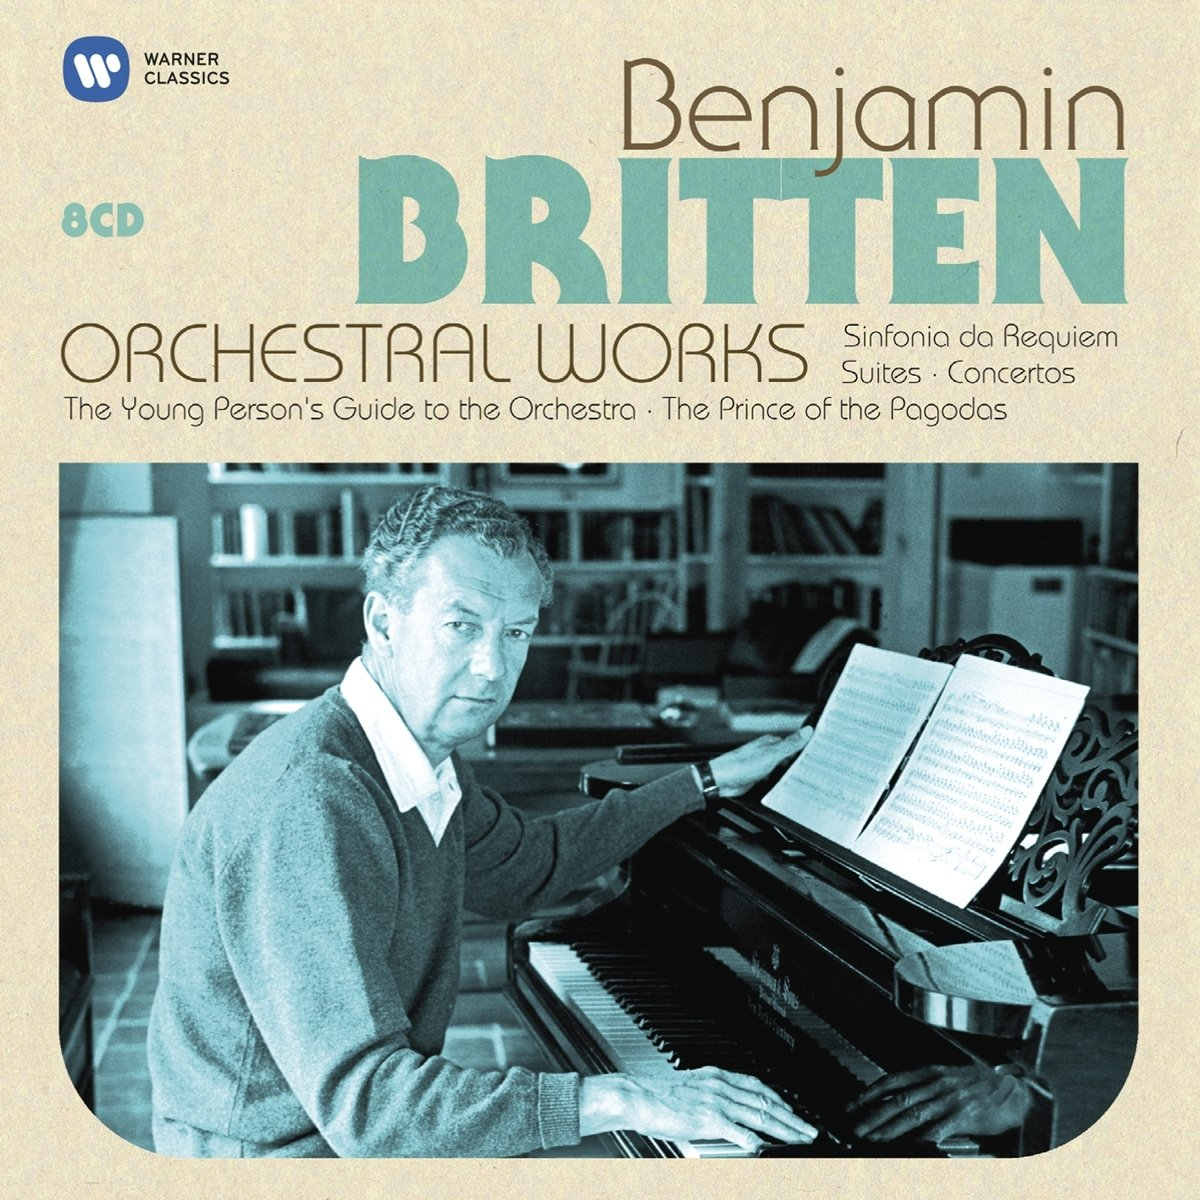 Britten: Orchestral Works by Warner Classics